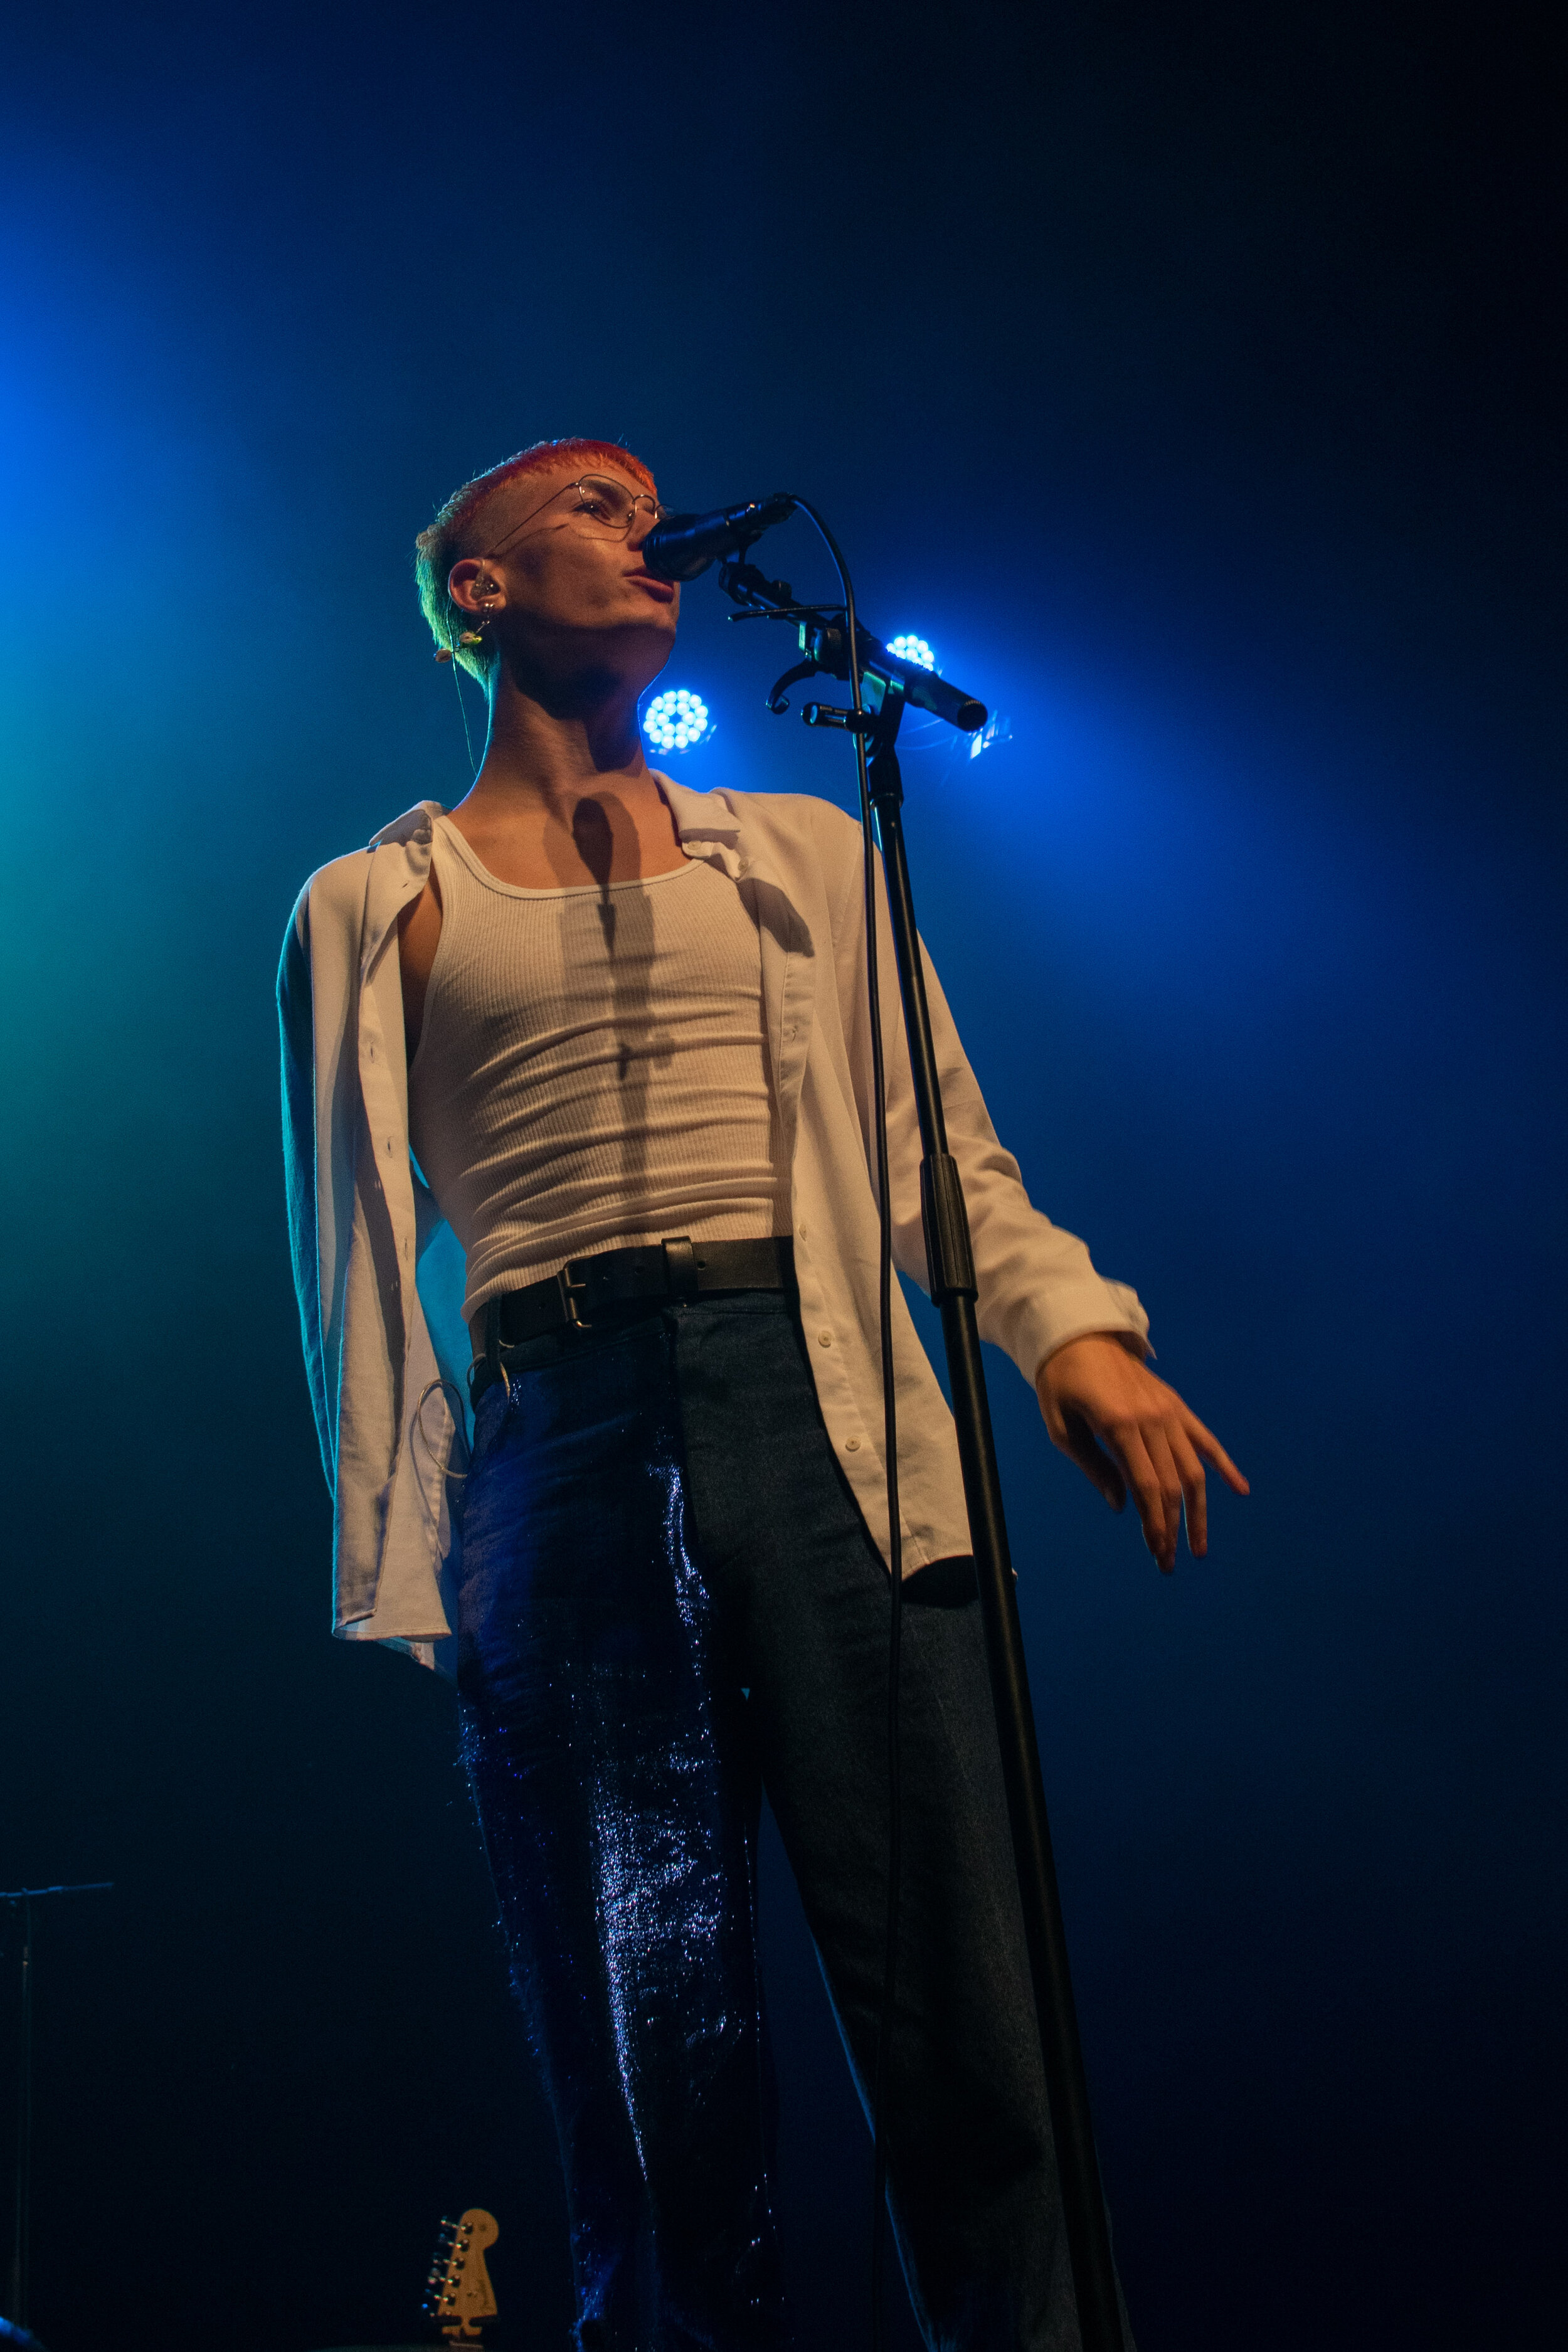 Gus Dapperton used optics to emphasize his eye-catching stage performances, using a light show of different colors and patterns. ( Jackie Sedley / Culture Editor)